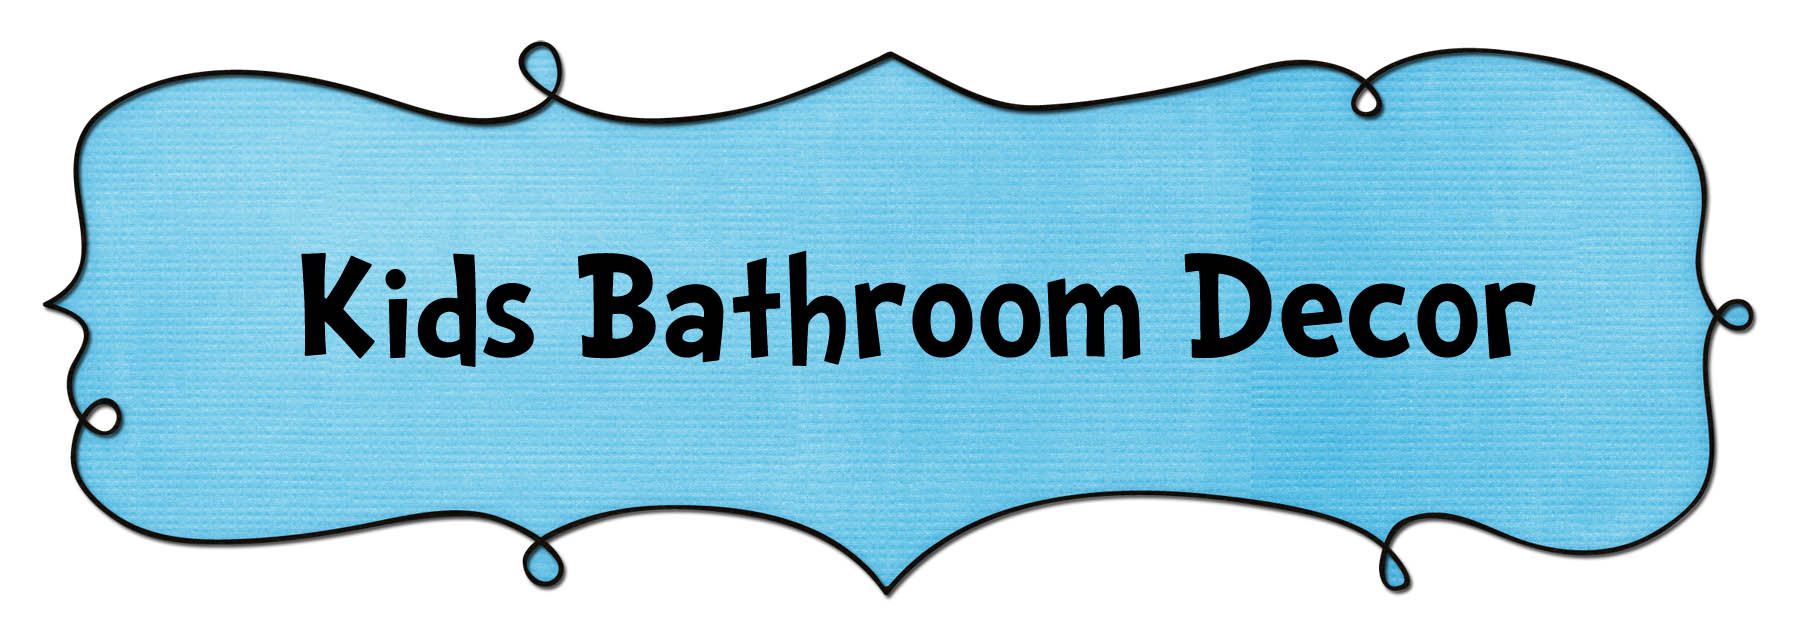 Bathroom Decor and Accessories